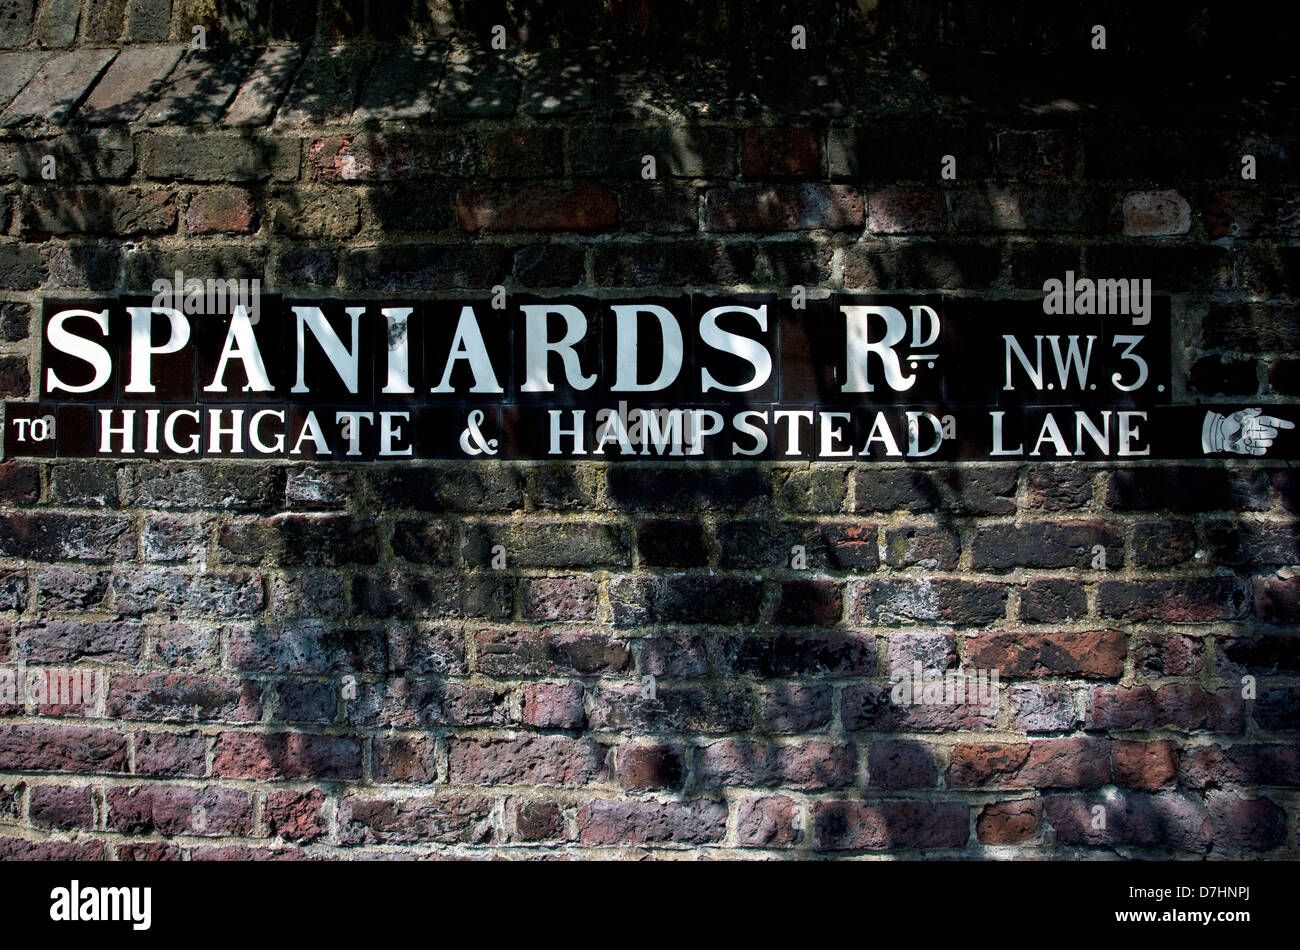 Street sign for Spaniards Road in Hampstead, London - Stock Image